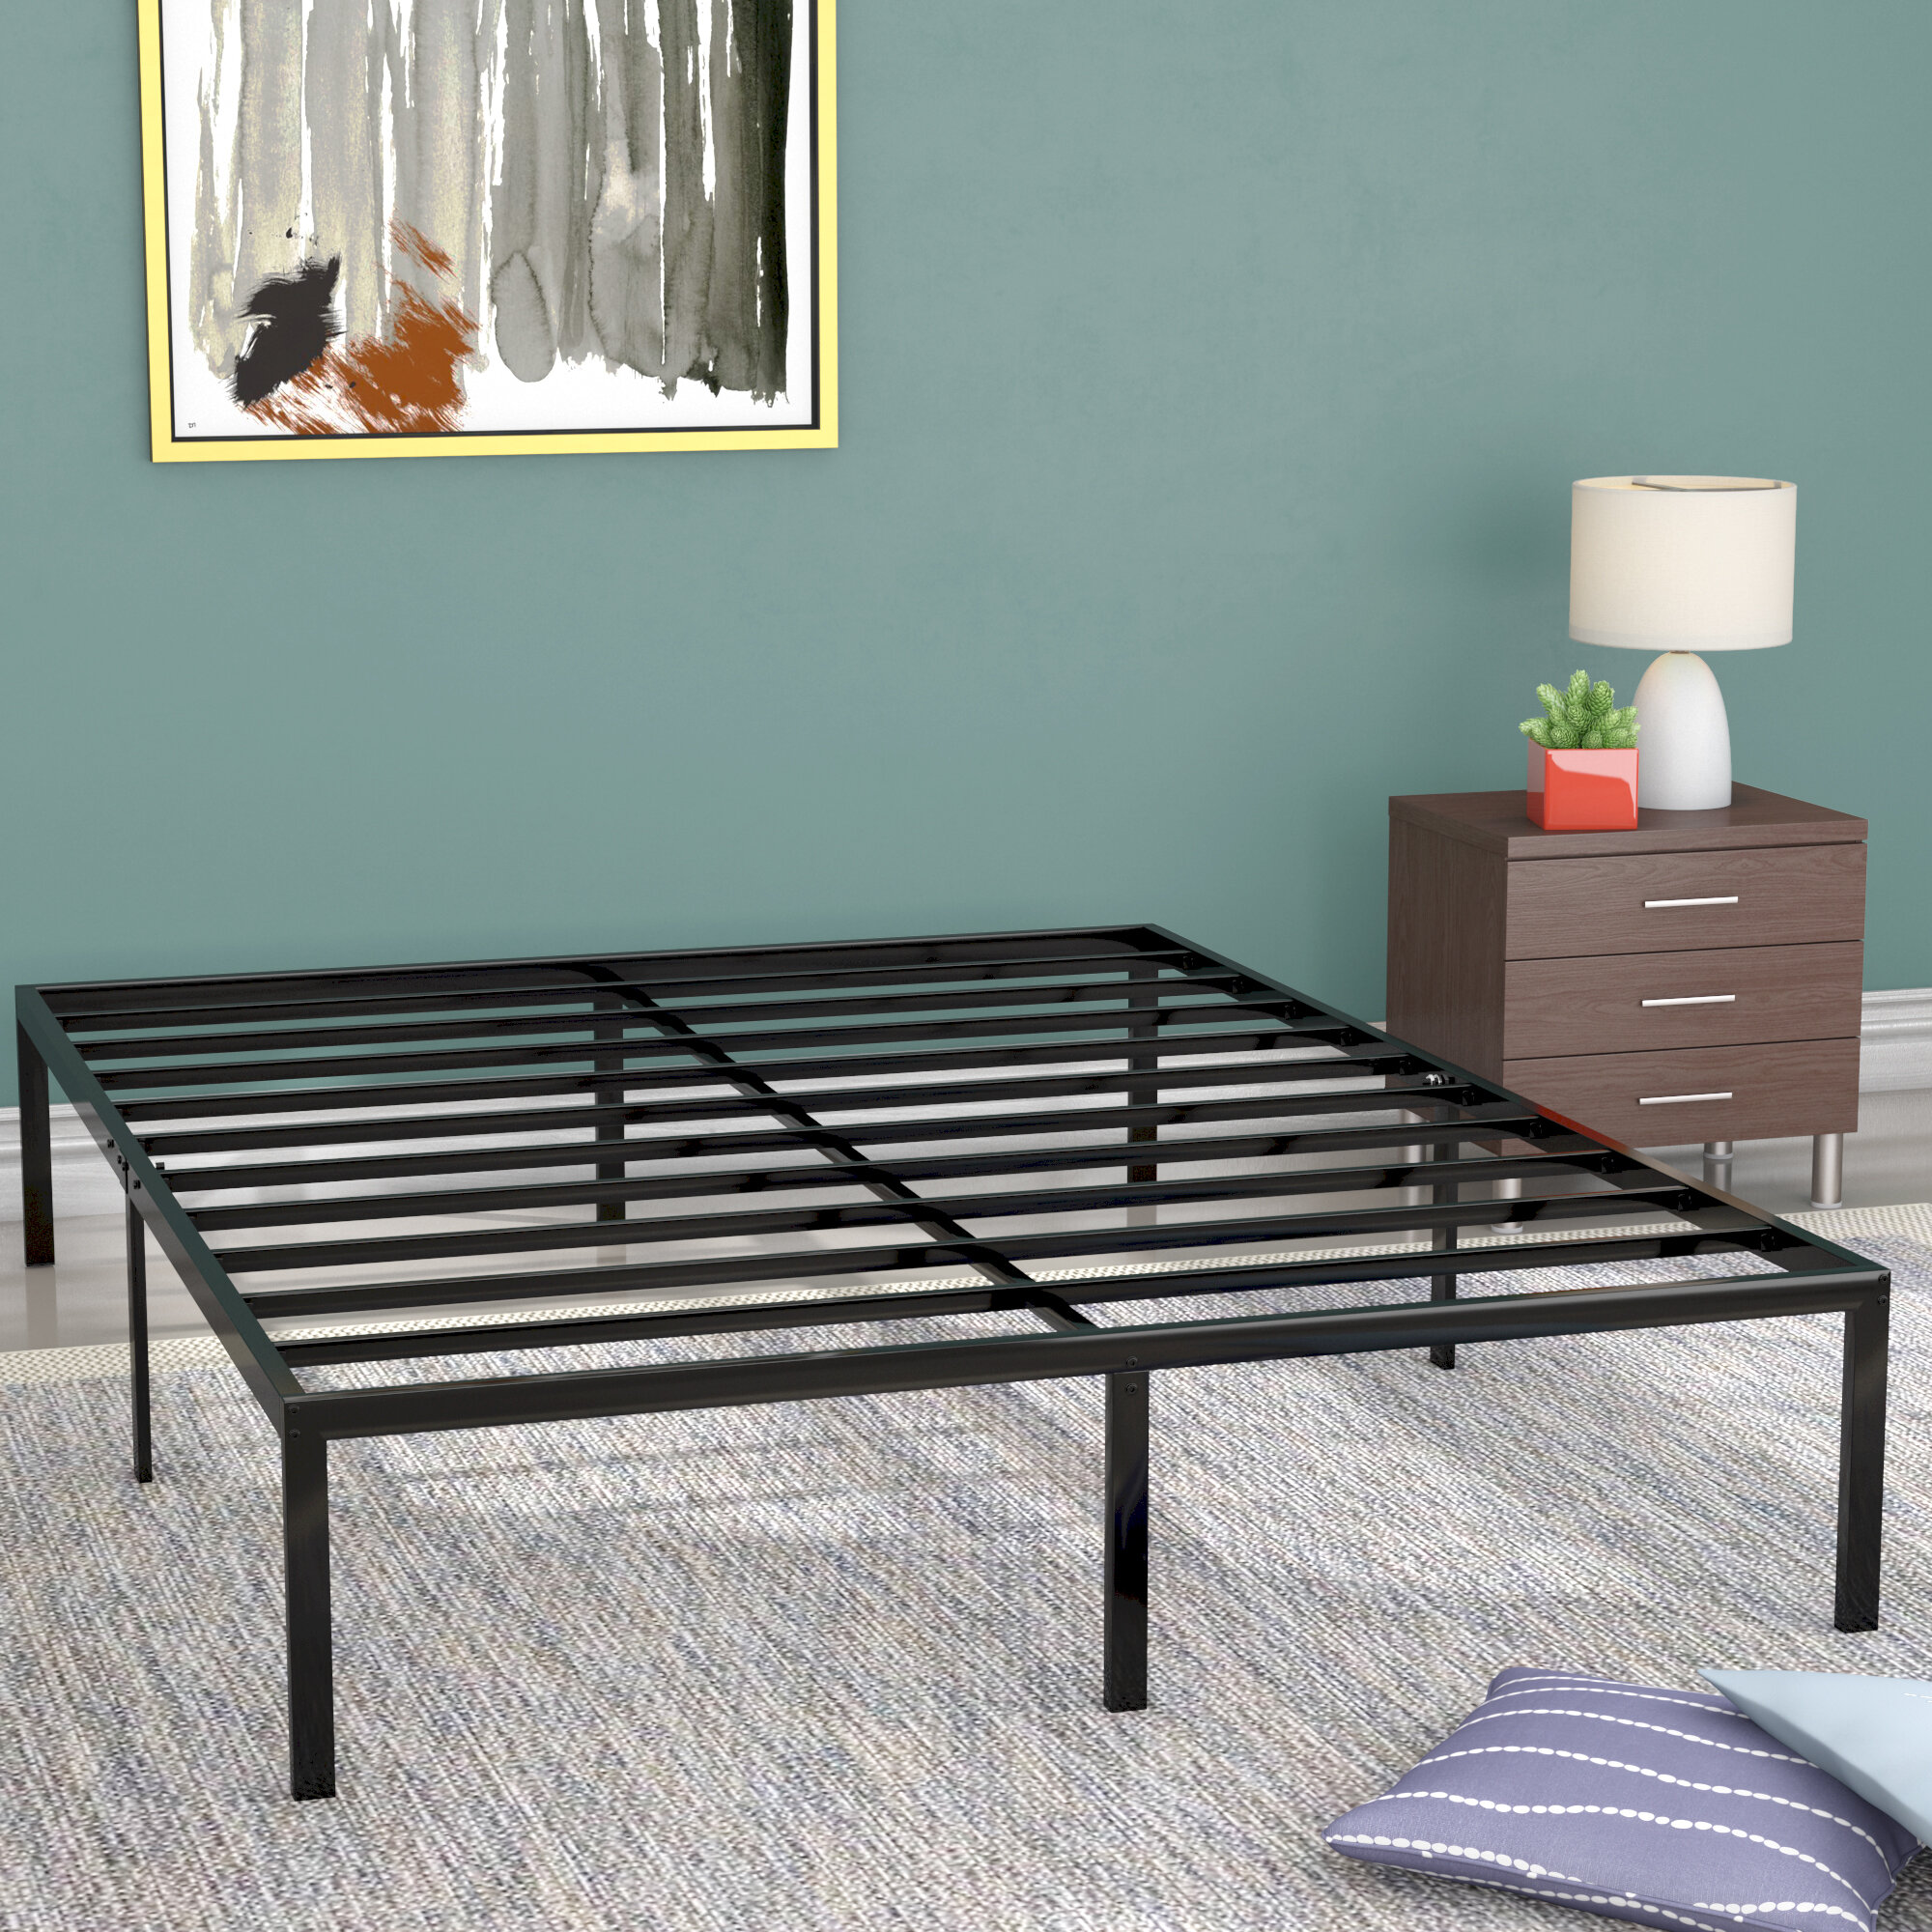 Black Metal Beds Bed Frames Free Shipping Over 35 Wayfair